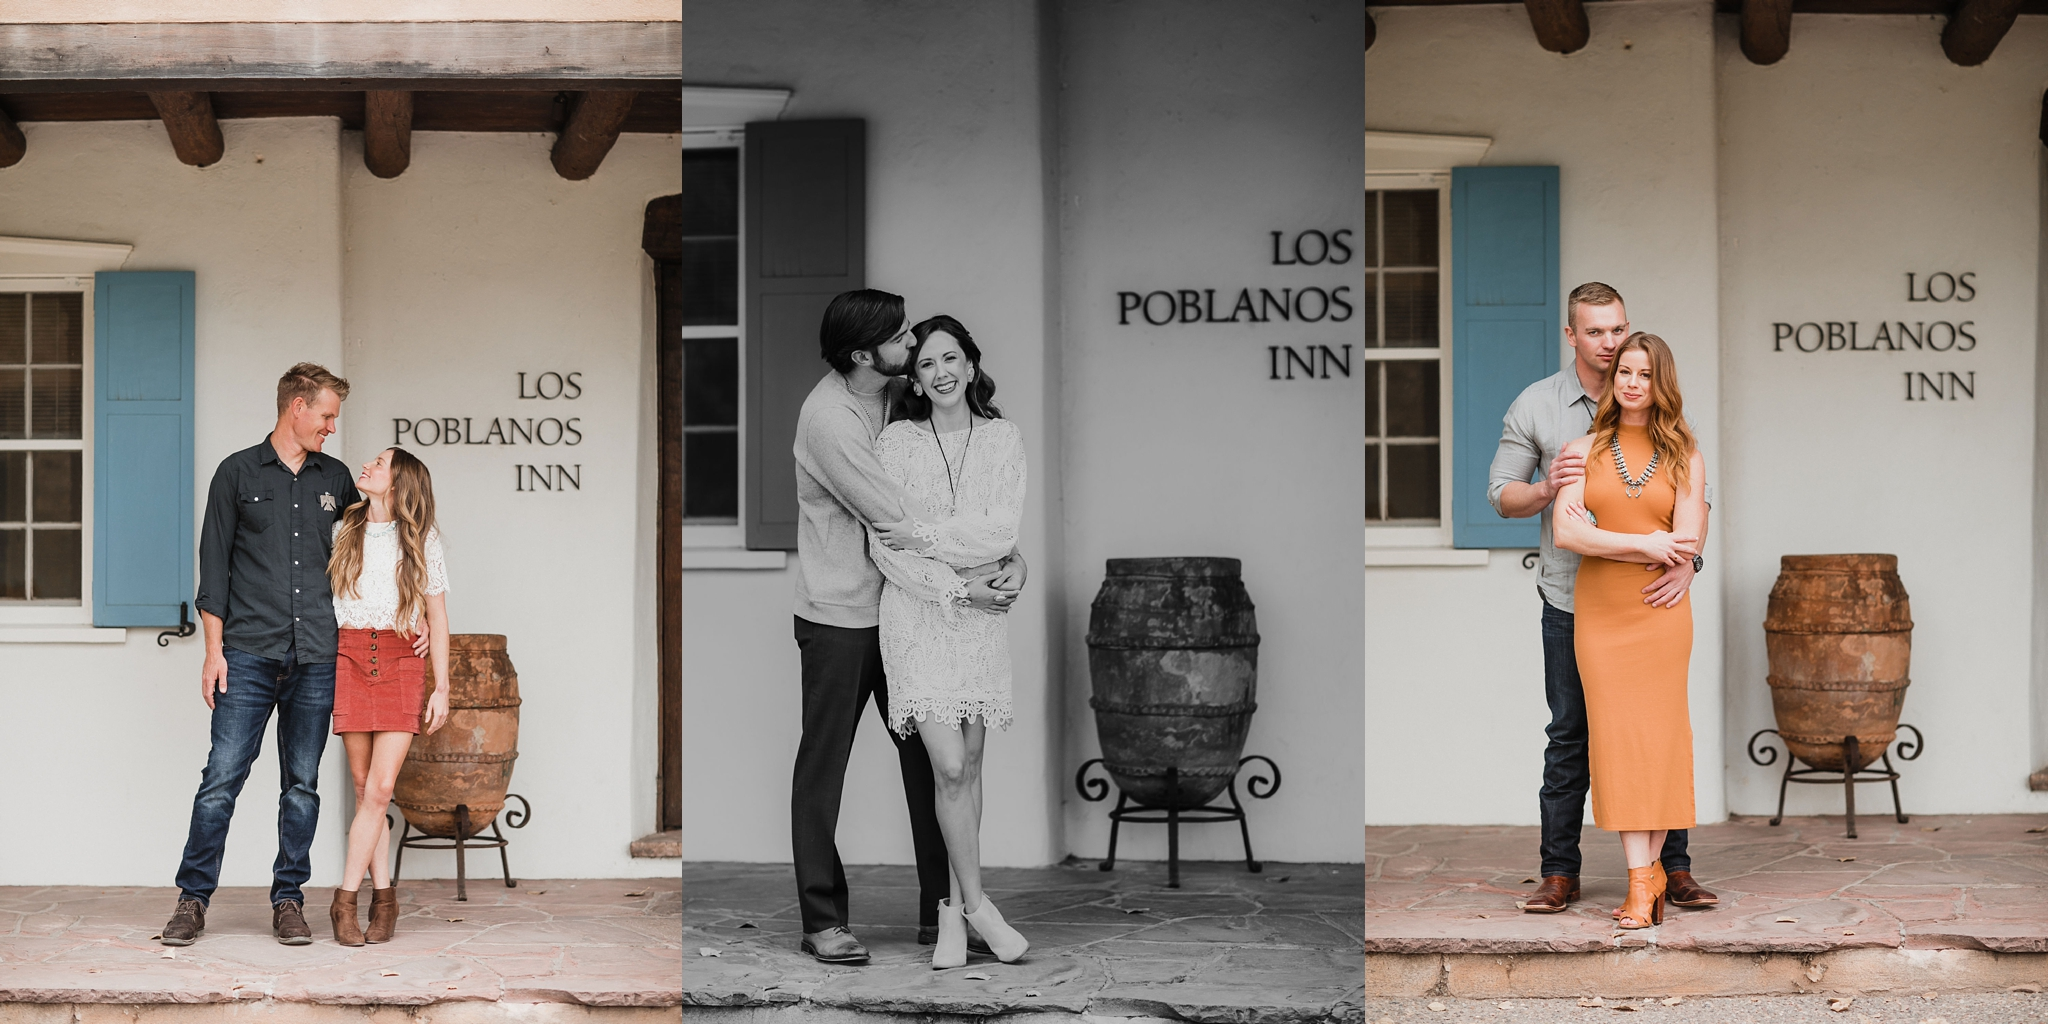 Alicia+lucia+photography+-+albuquerque+wedding+photographer+-+santa+fe+wedding+photography+-+new+mexico+wedding+photographer+-+new+mexico+wedding+-+albuquerque+wedding+-+rocky+mountain+bride+-+los+poblanos+wedding_0058.jpg